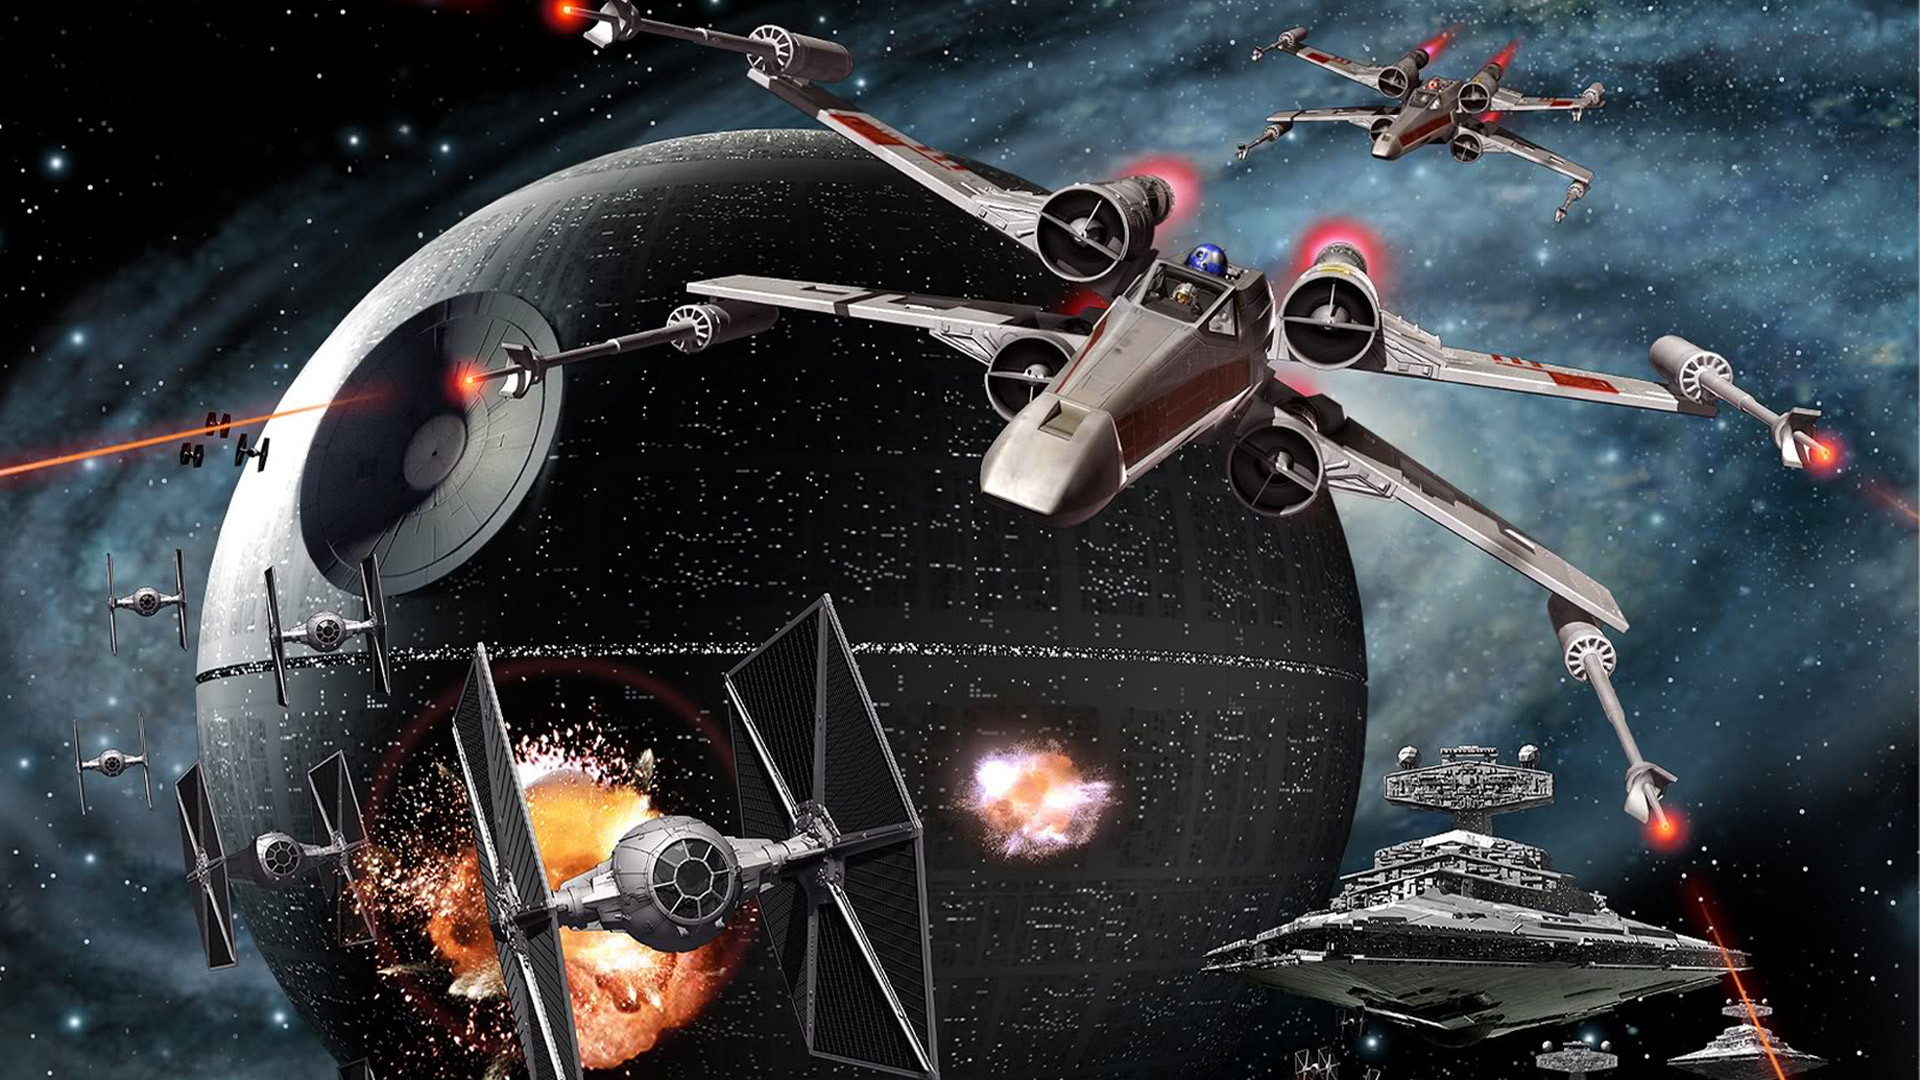 a nice piece of CG artwork showing the battle between the rebel alliance  and the empire over the death star. Looks very detailed as your wallpaper.